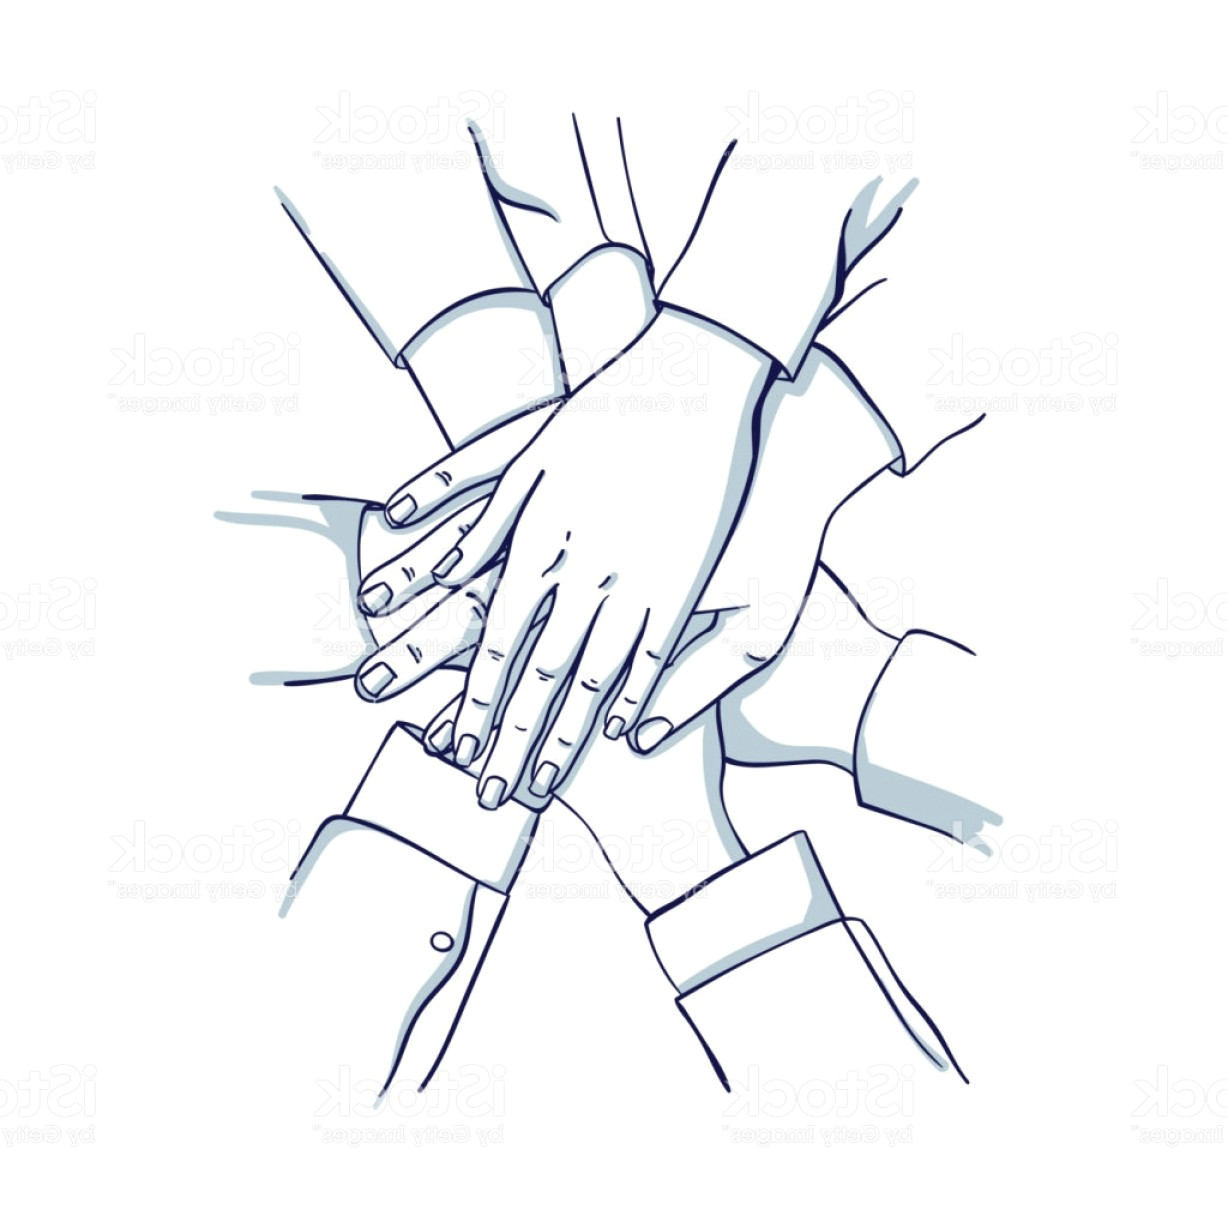 helping hands vector images in business stack of business hands gm